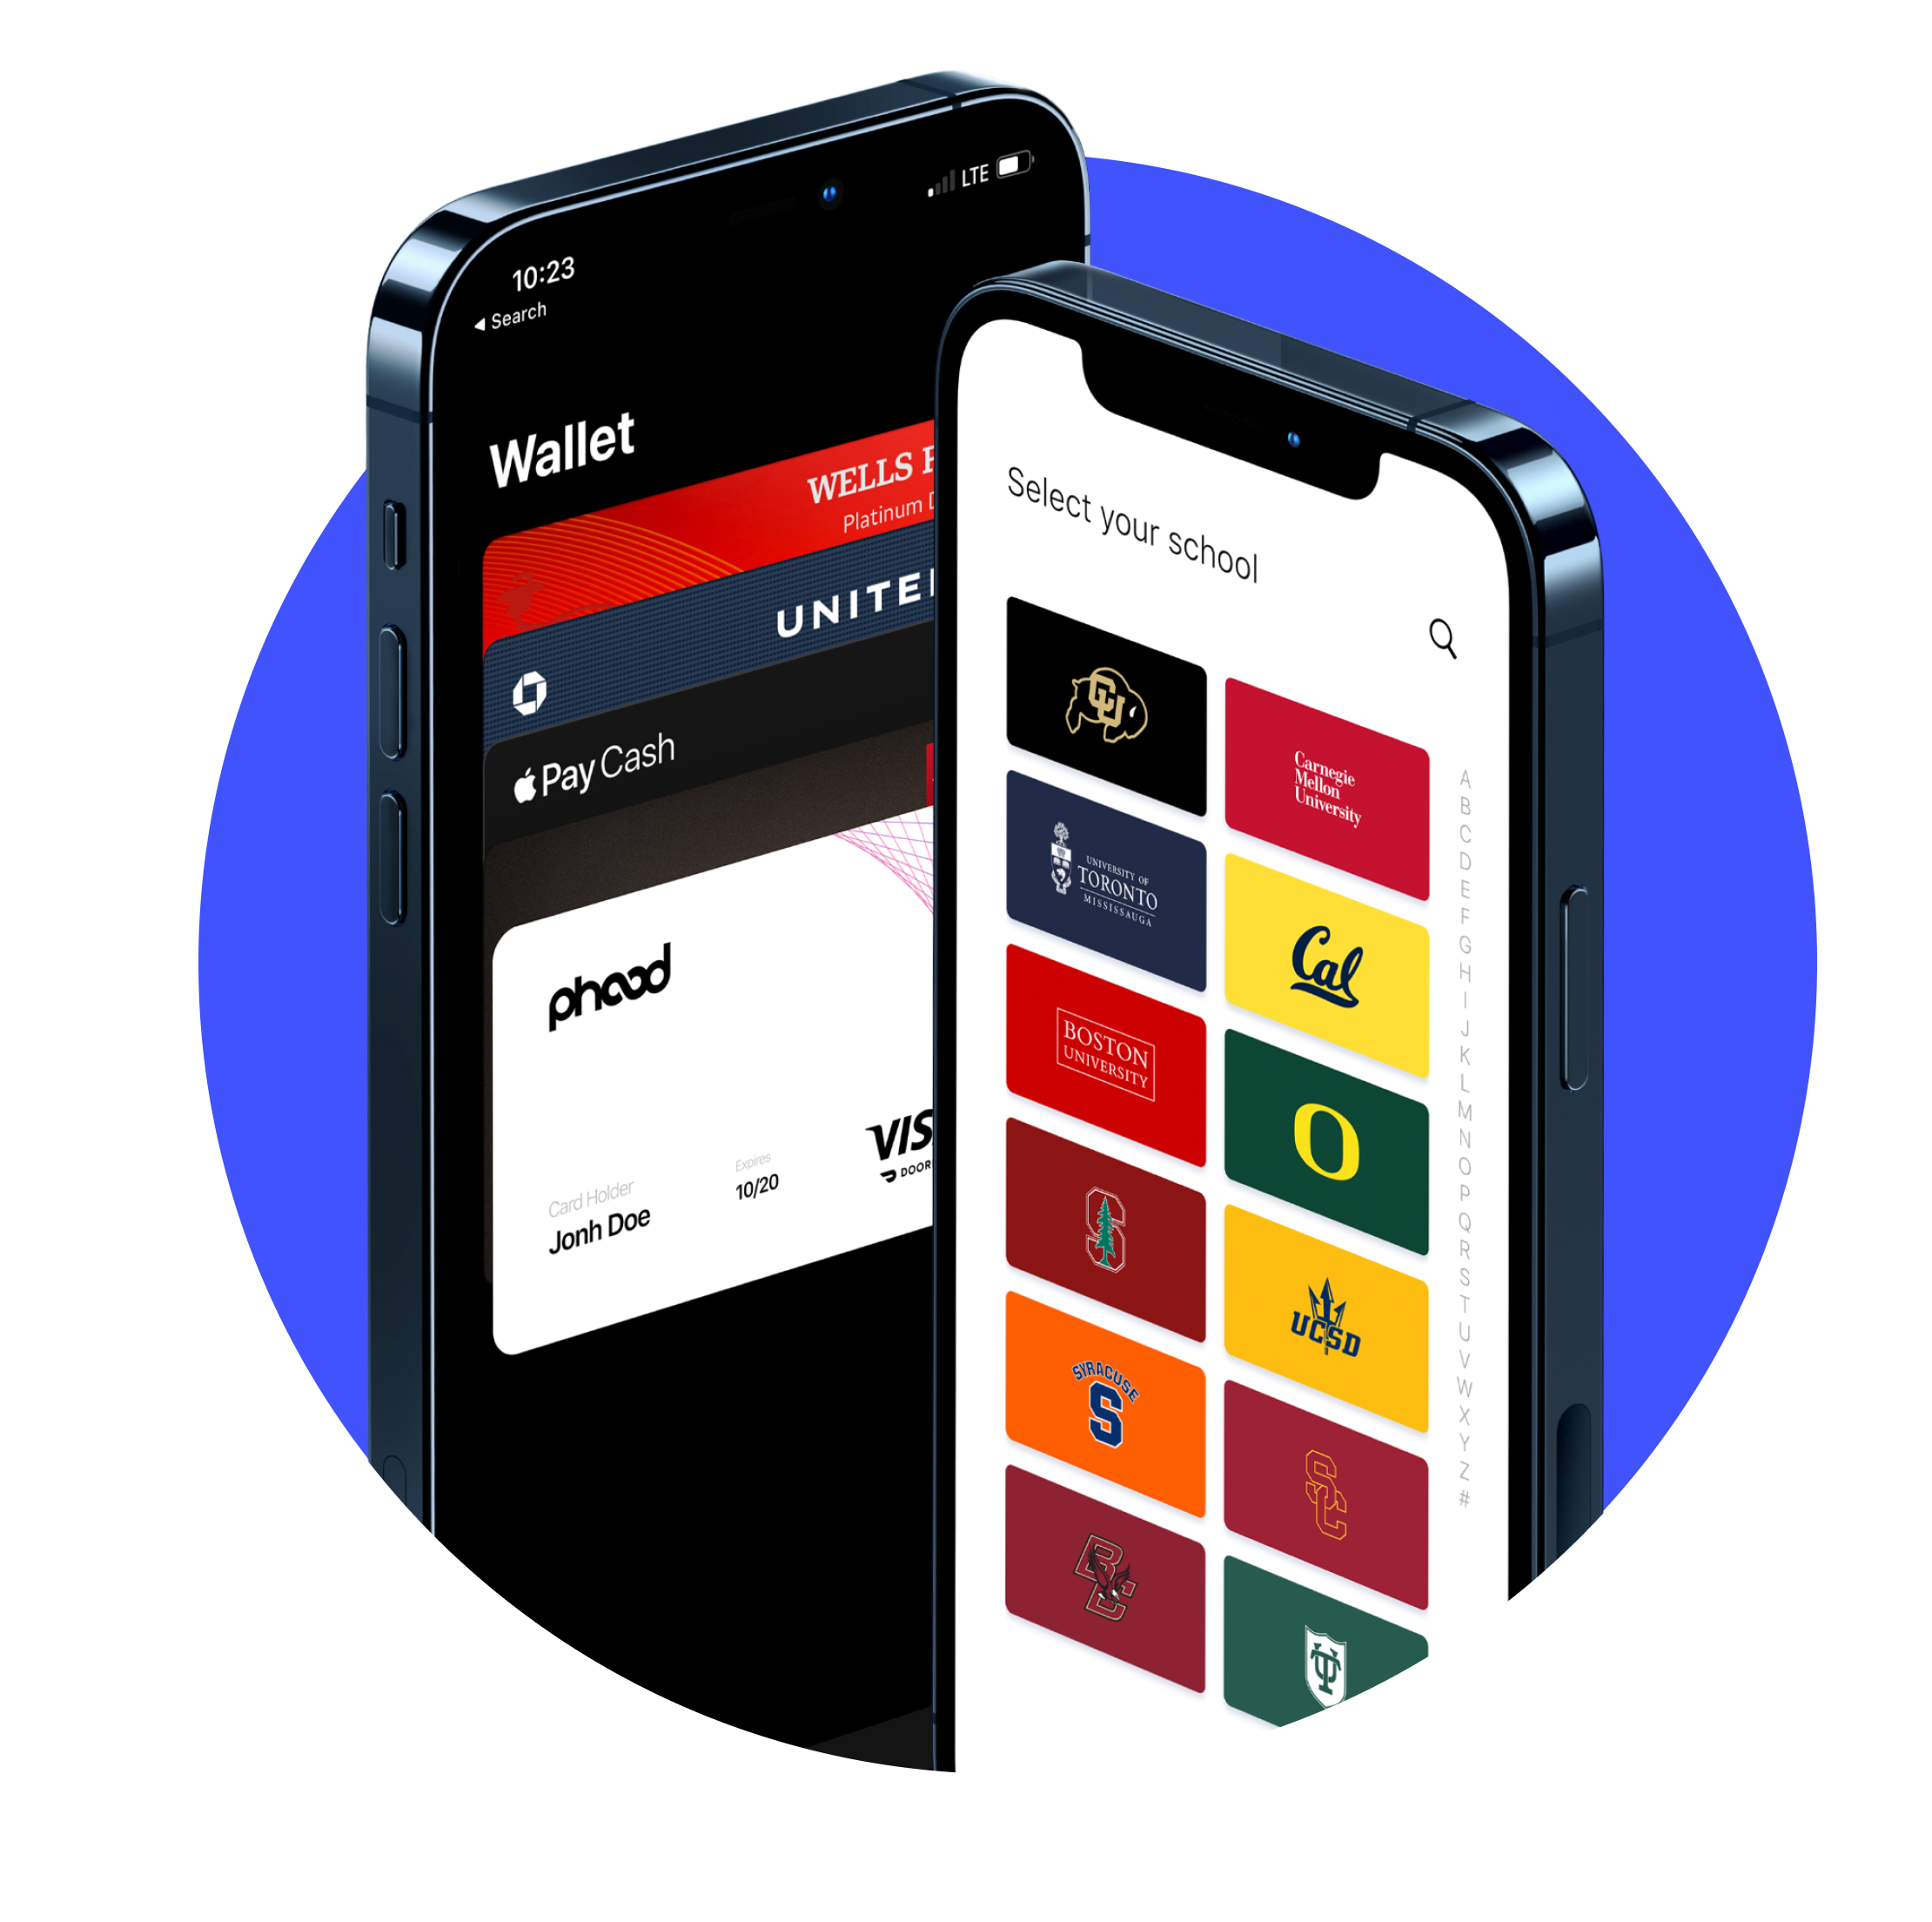 A rendering of our app and digital phood card inside an apple wallet